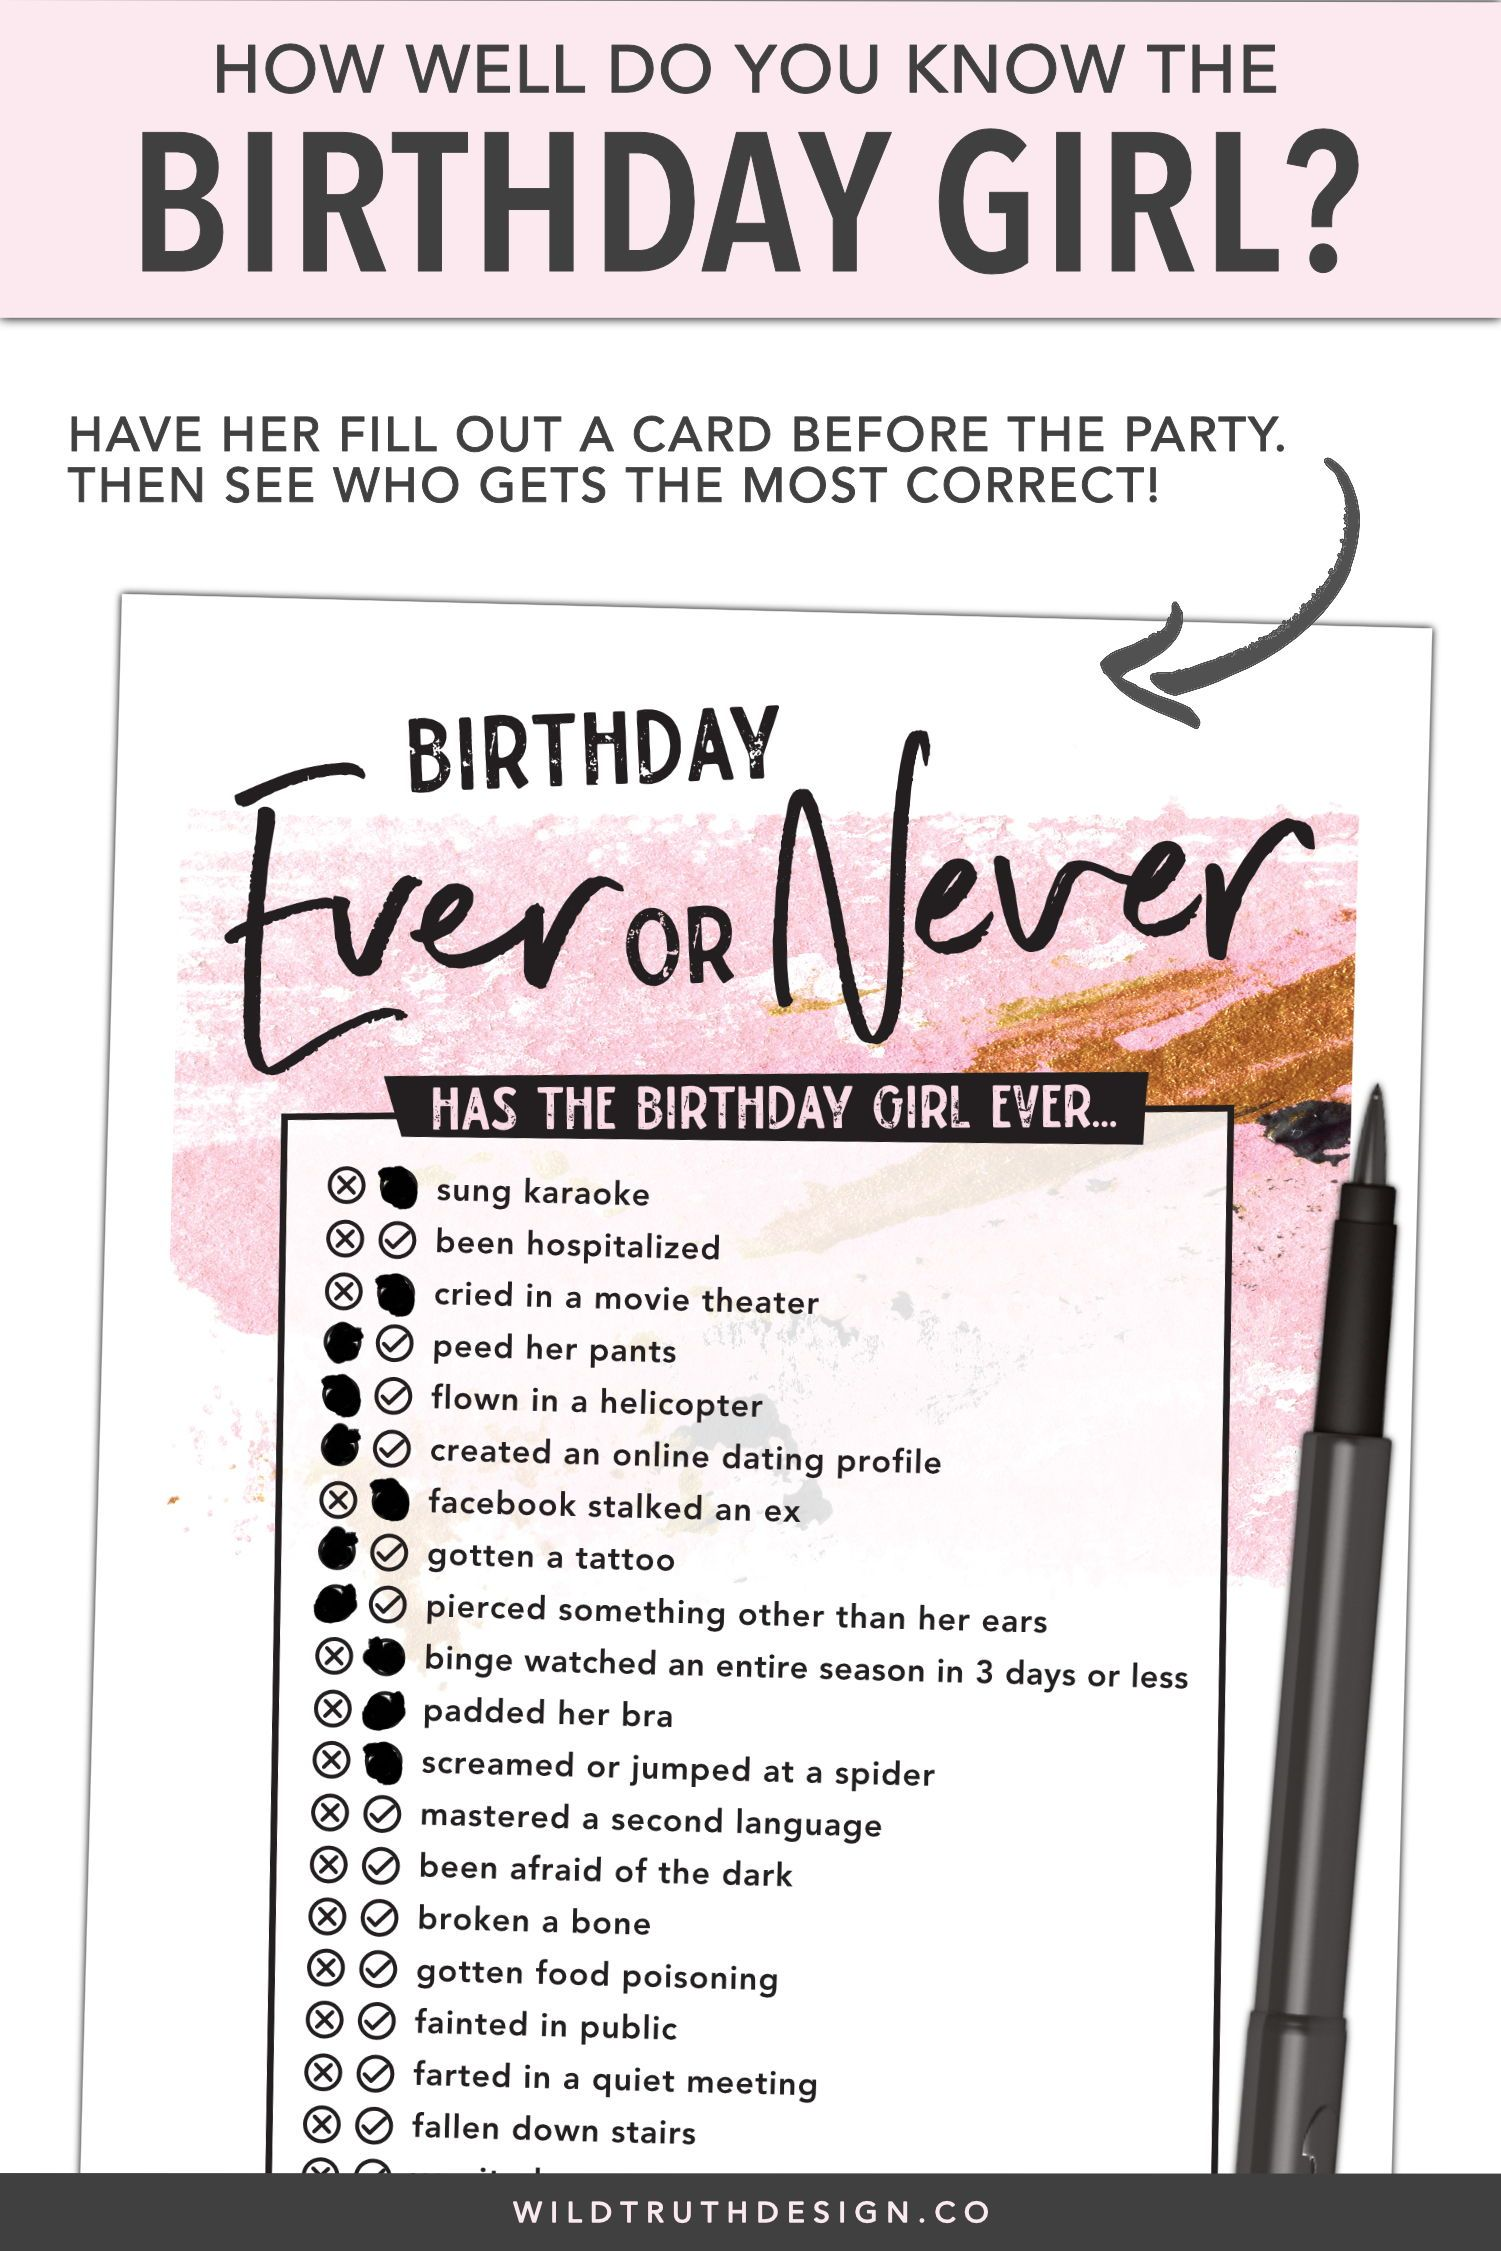 Ever Or Never Women S Birthday Party Game 106d Wild Truth Design Co Woman Birthday Party 40th Birthday Games 40th Birthday Parties